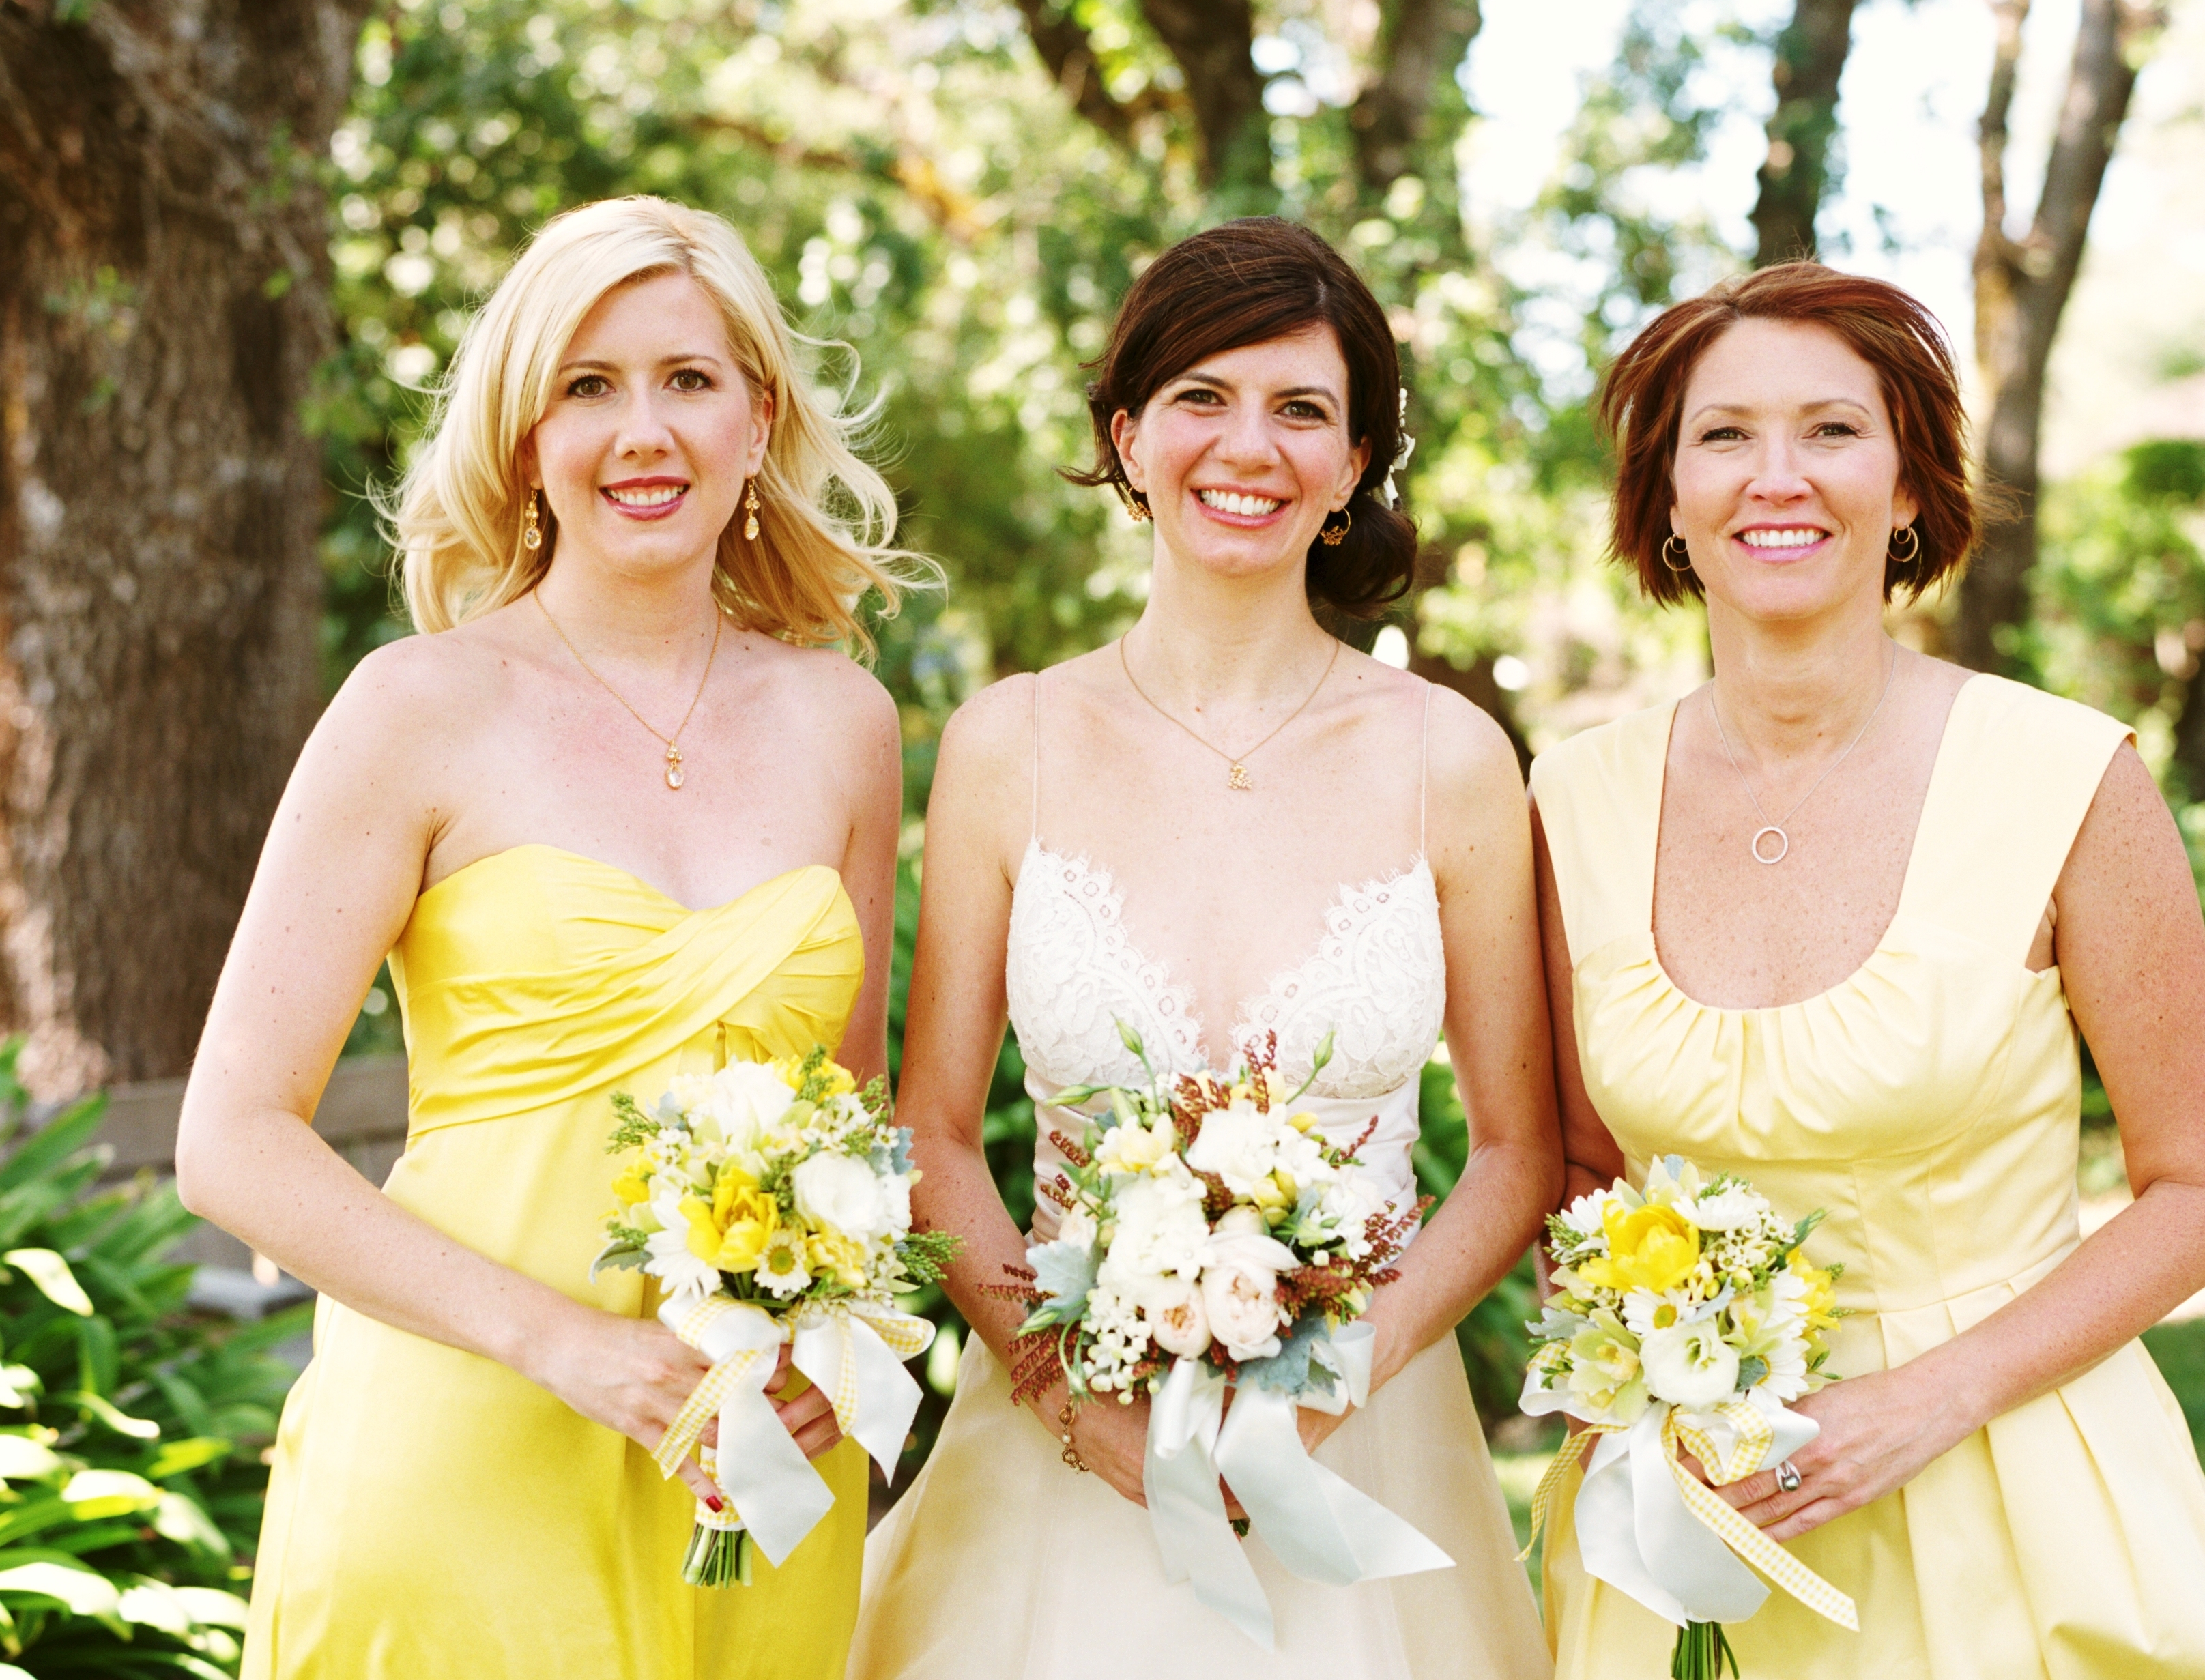 Bridesmaid Dresses, yellow, Wedding party, Wedding, Farm, Wedding attire